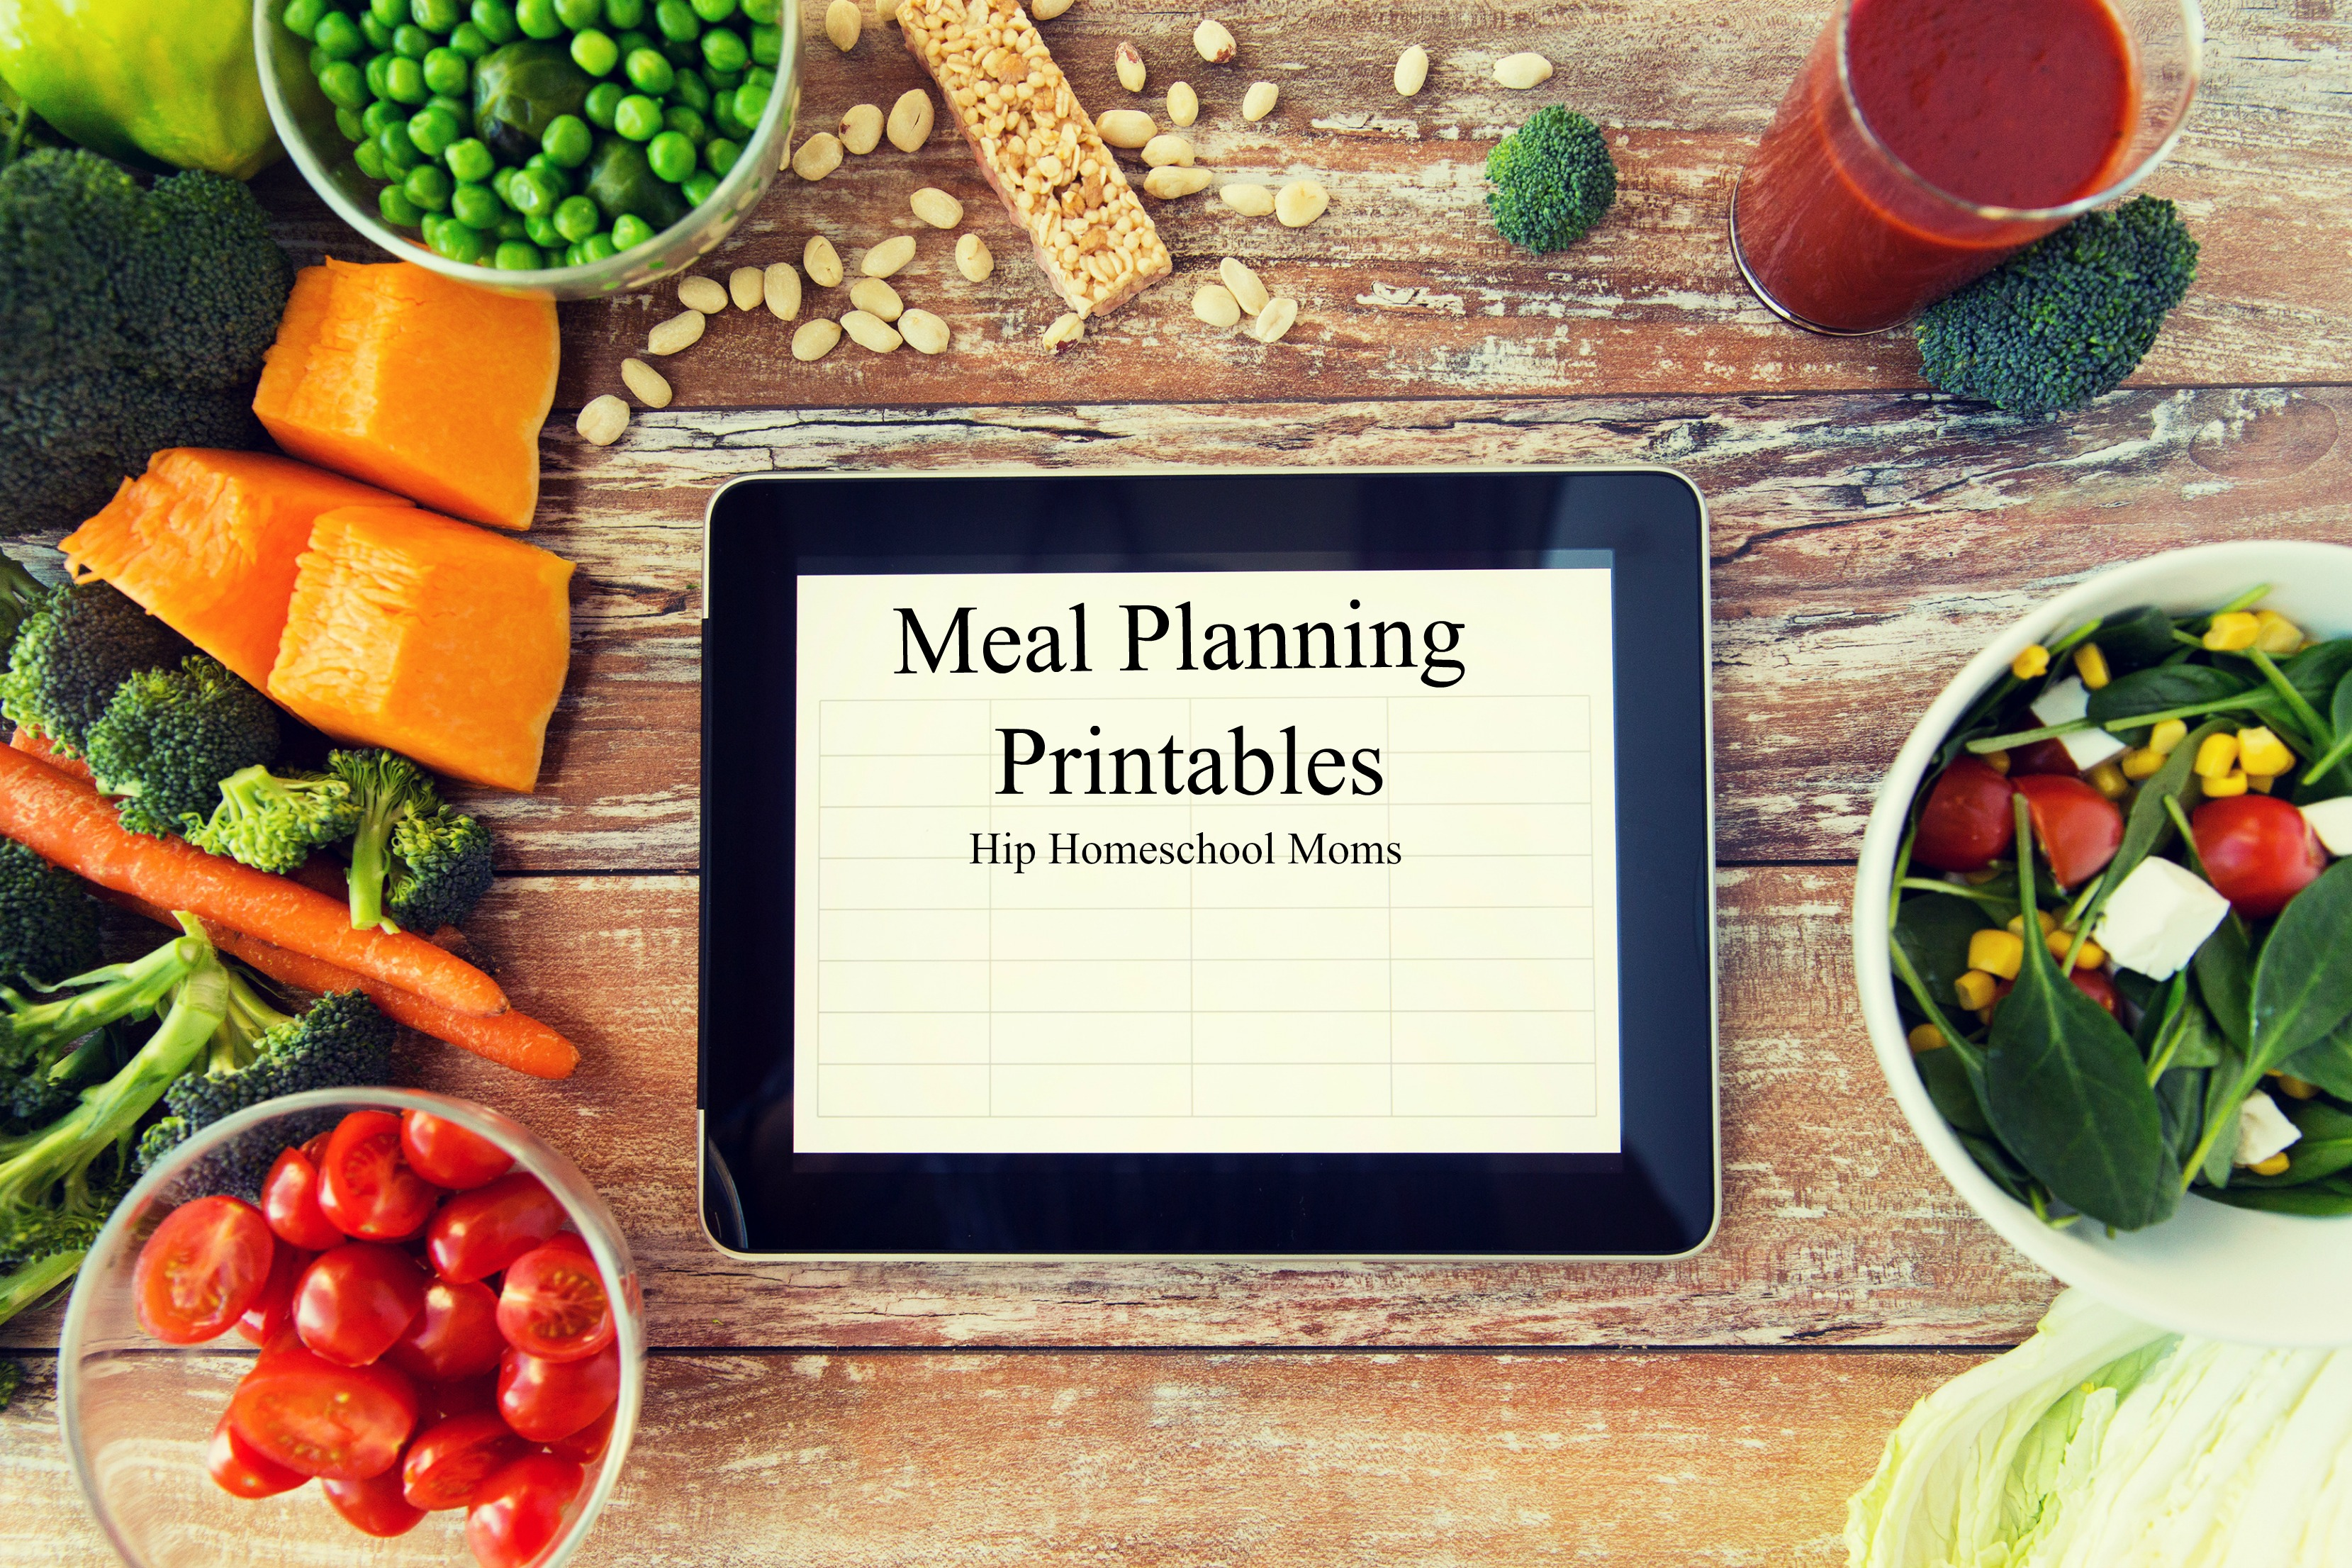 Meal Planning Printables and Ideas